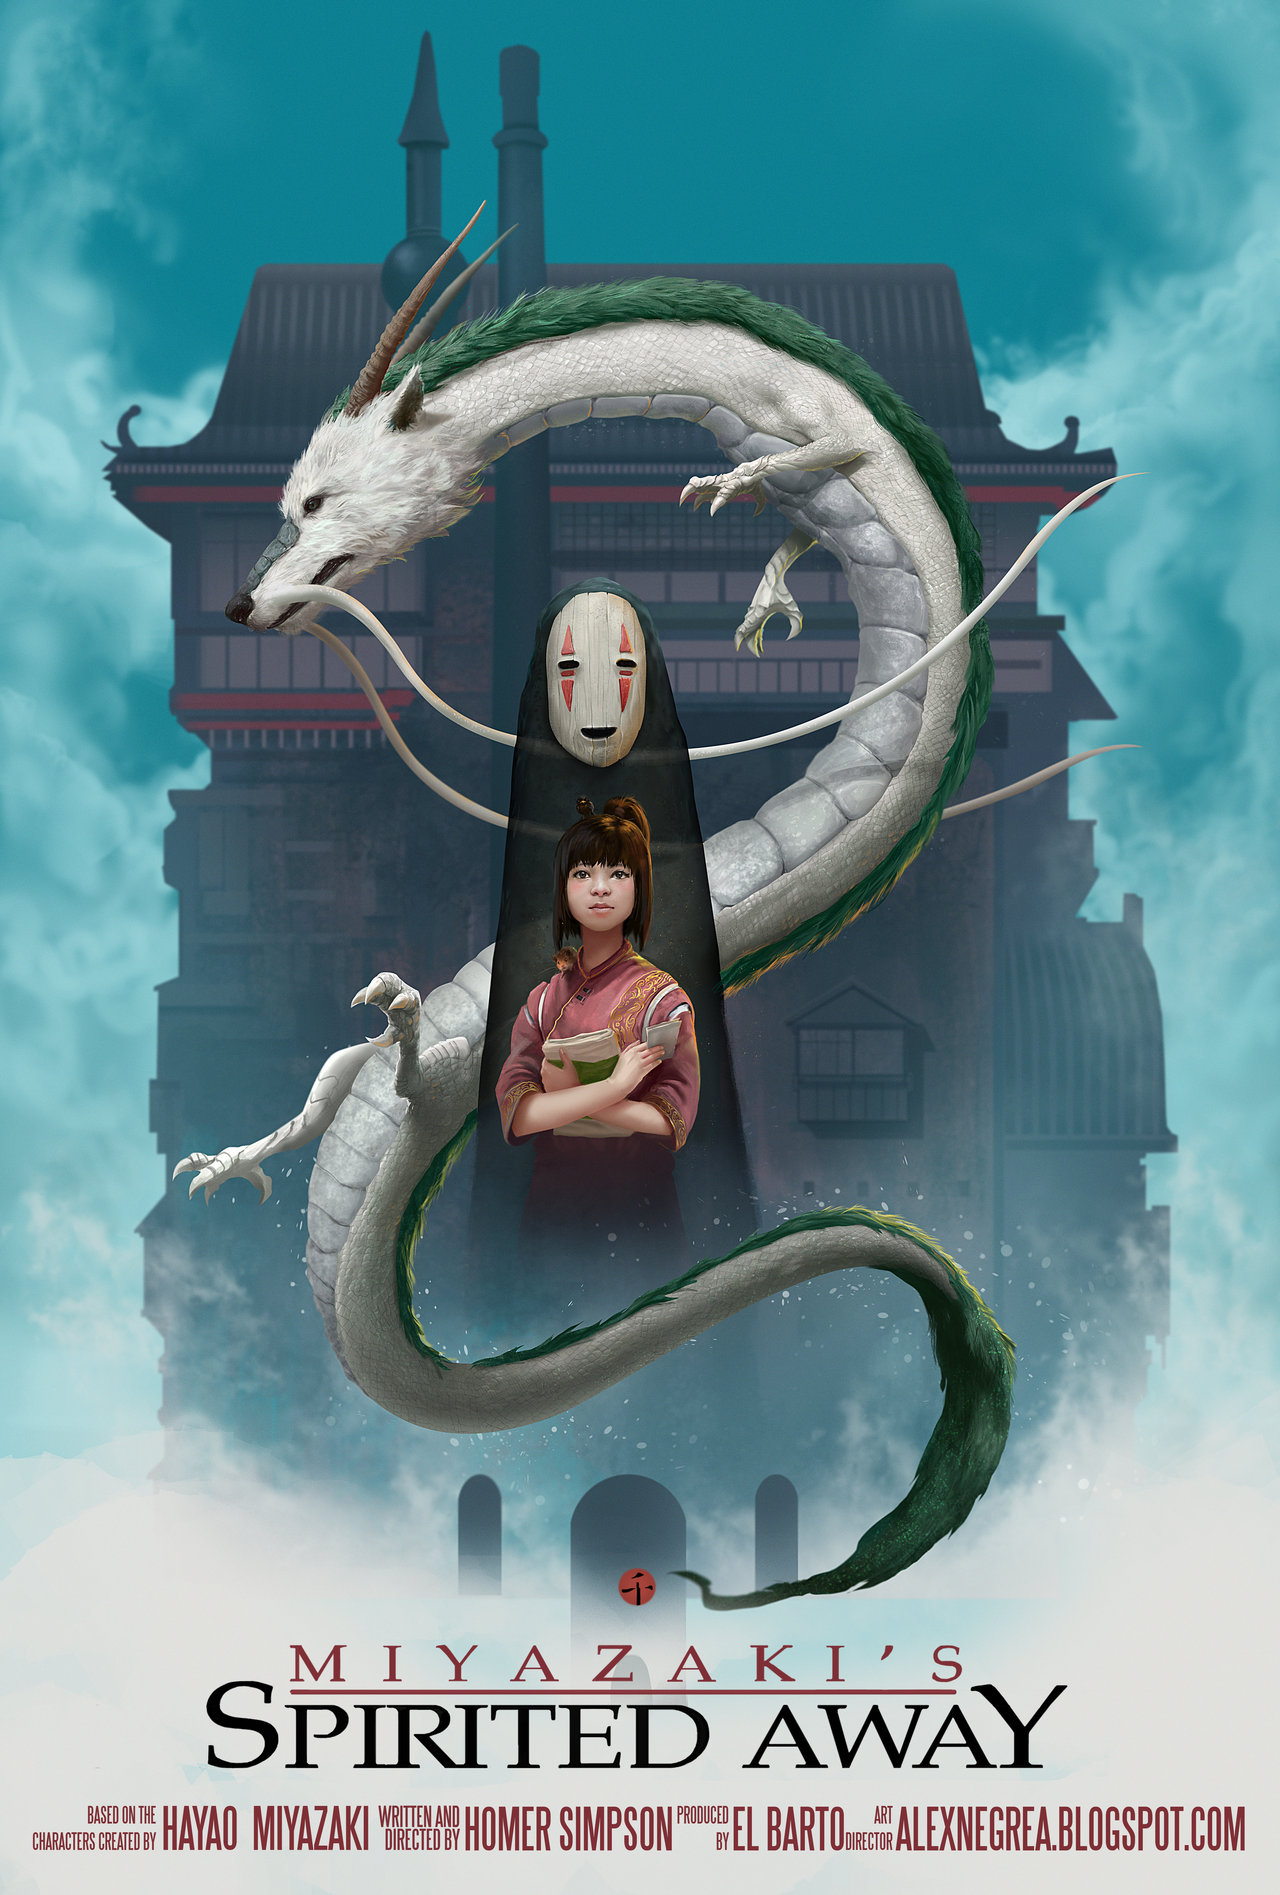 Spirited Away Quotes Sen To Chihiro No Kamikakushi Spirited Away Mobile Wallpaper